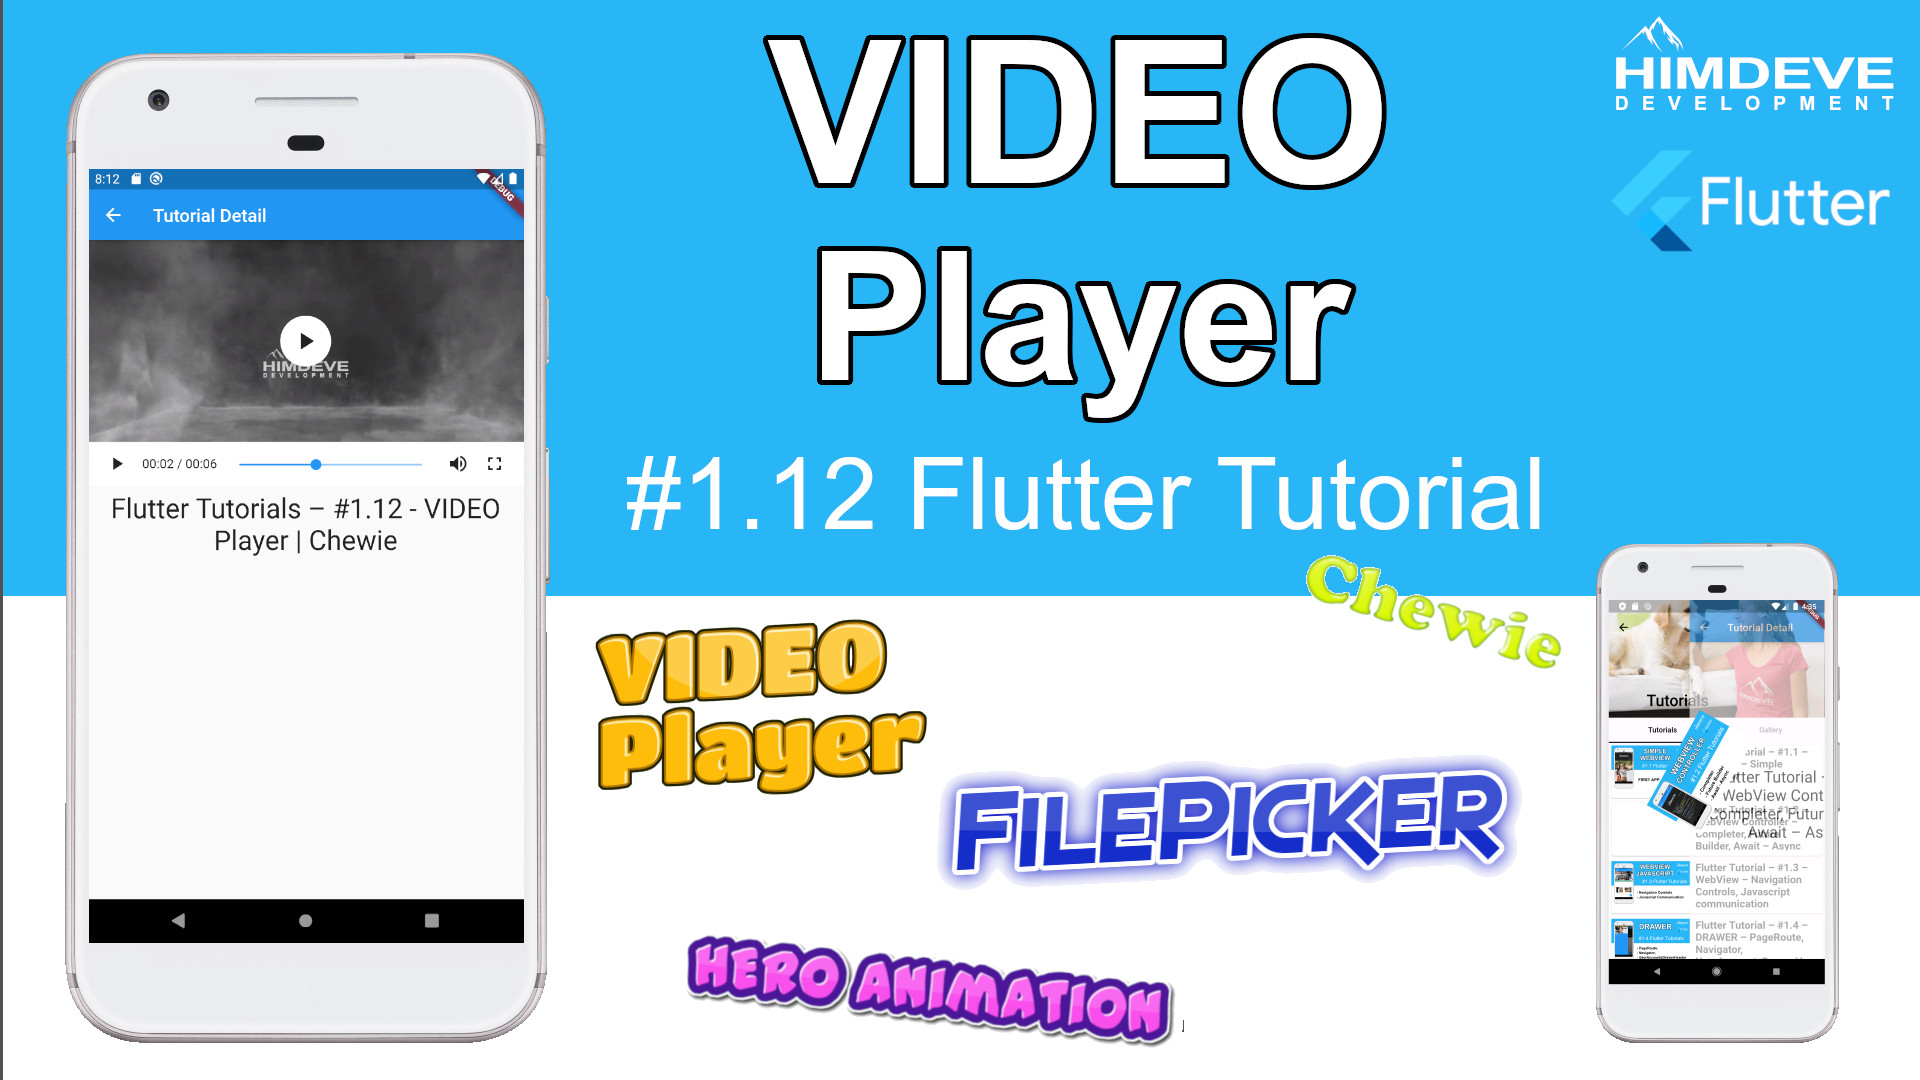 Himdeve tutorial 1.12 - video player